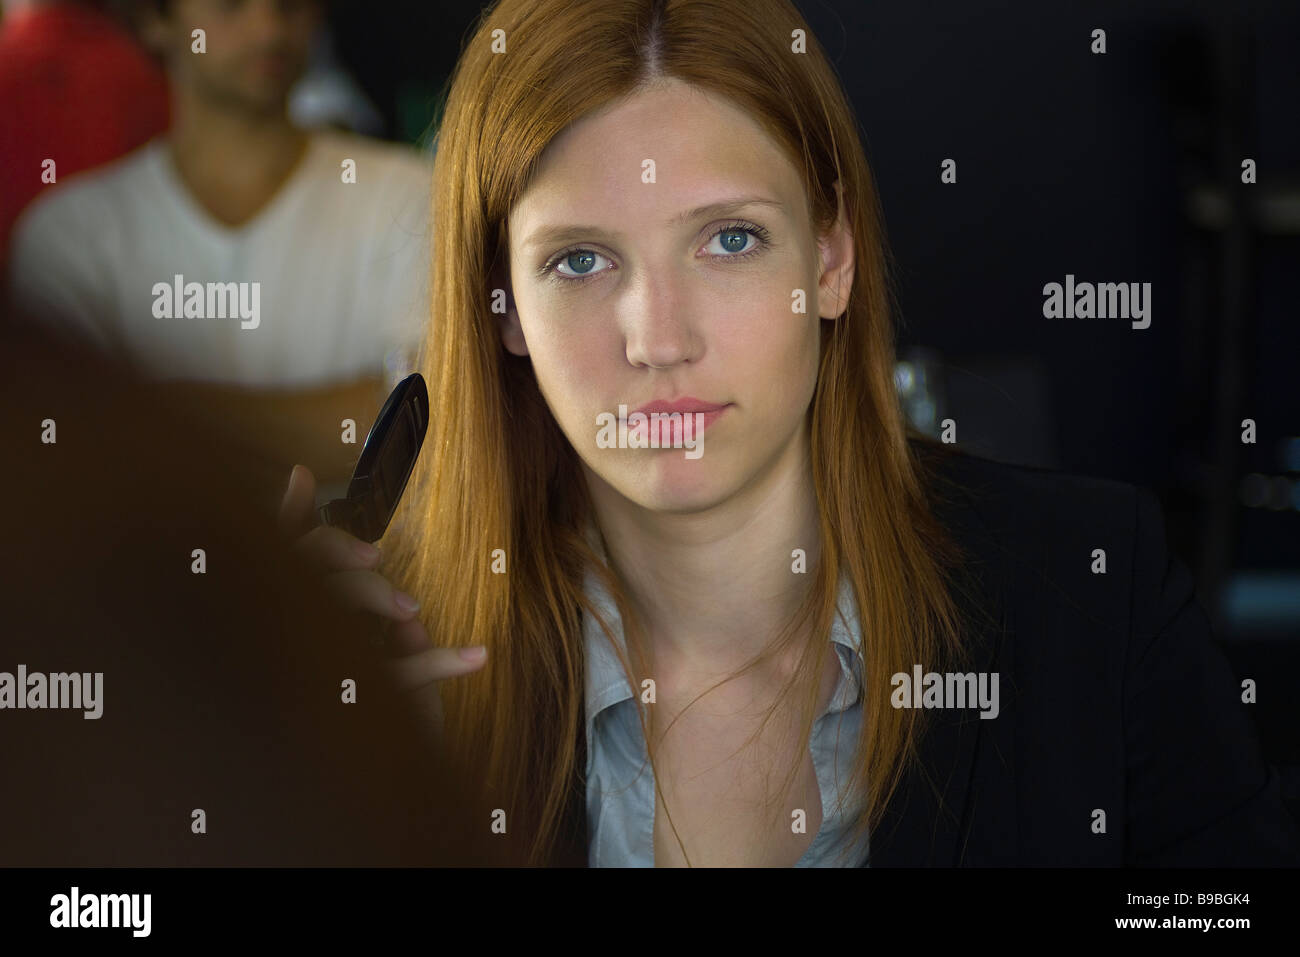 Woman holding cell phone, regardant at camera Banque D'Images